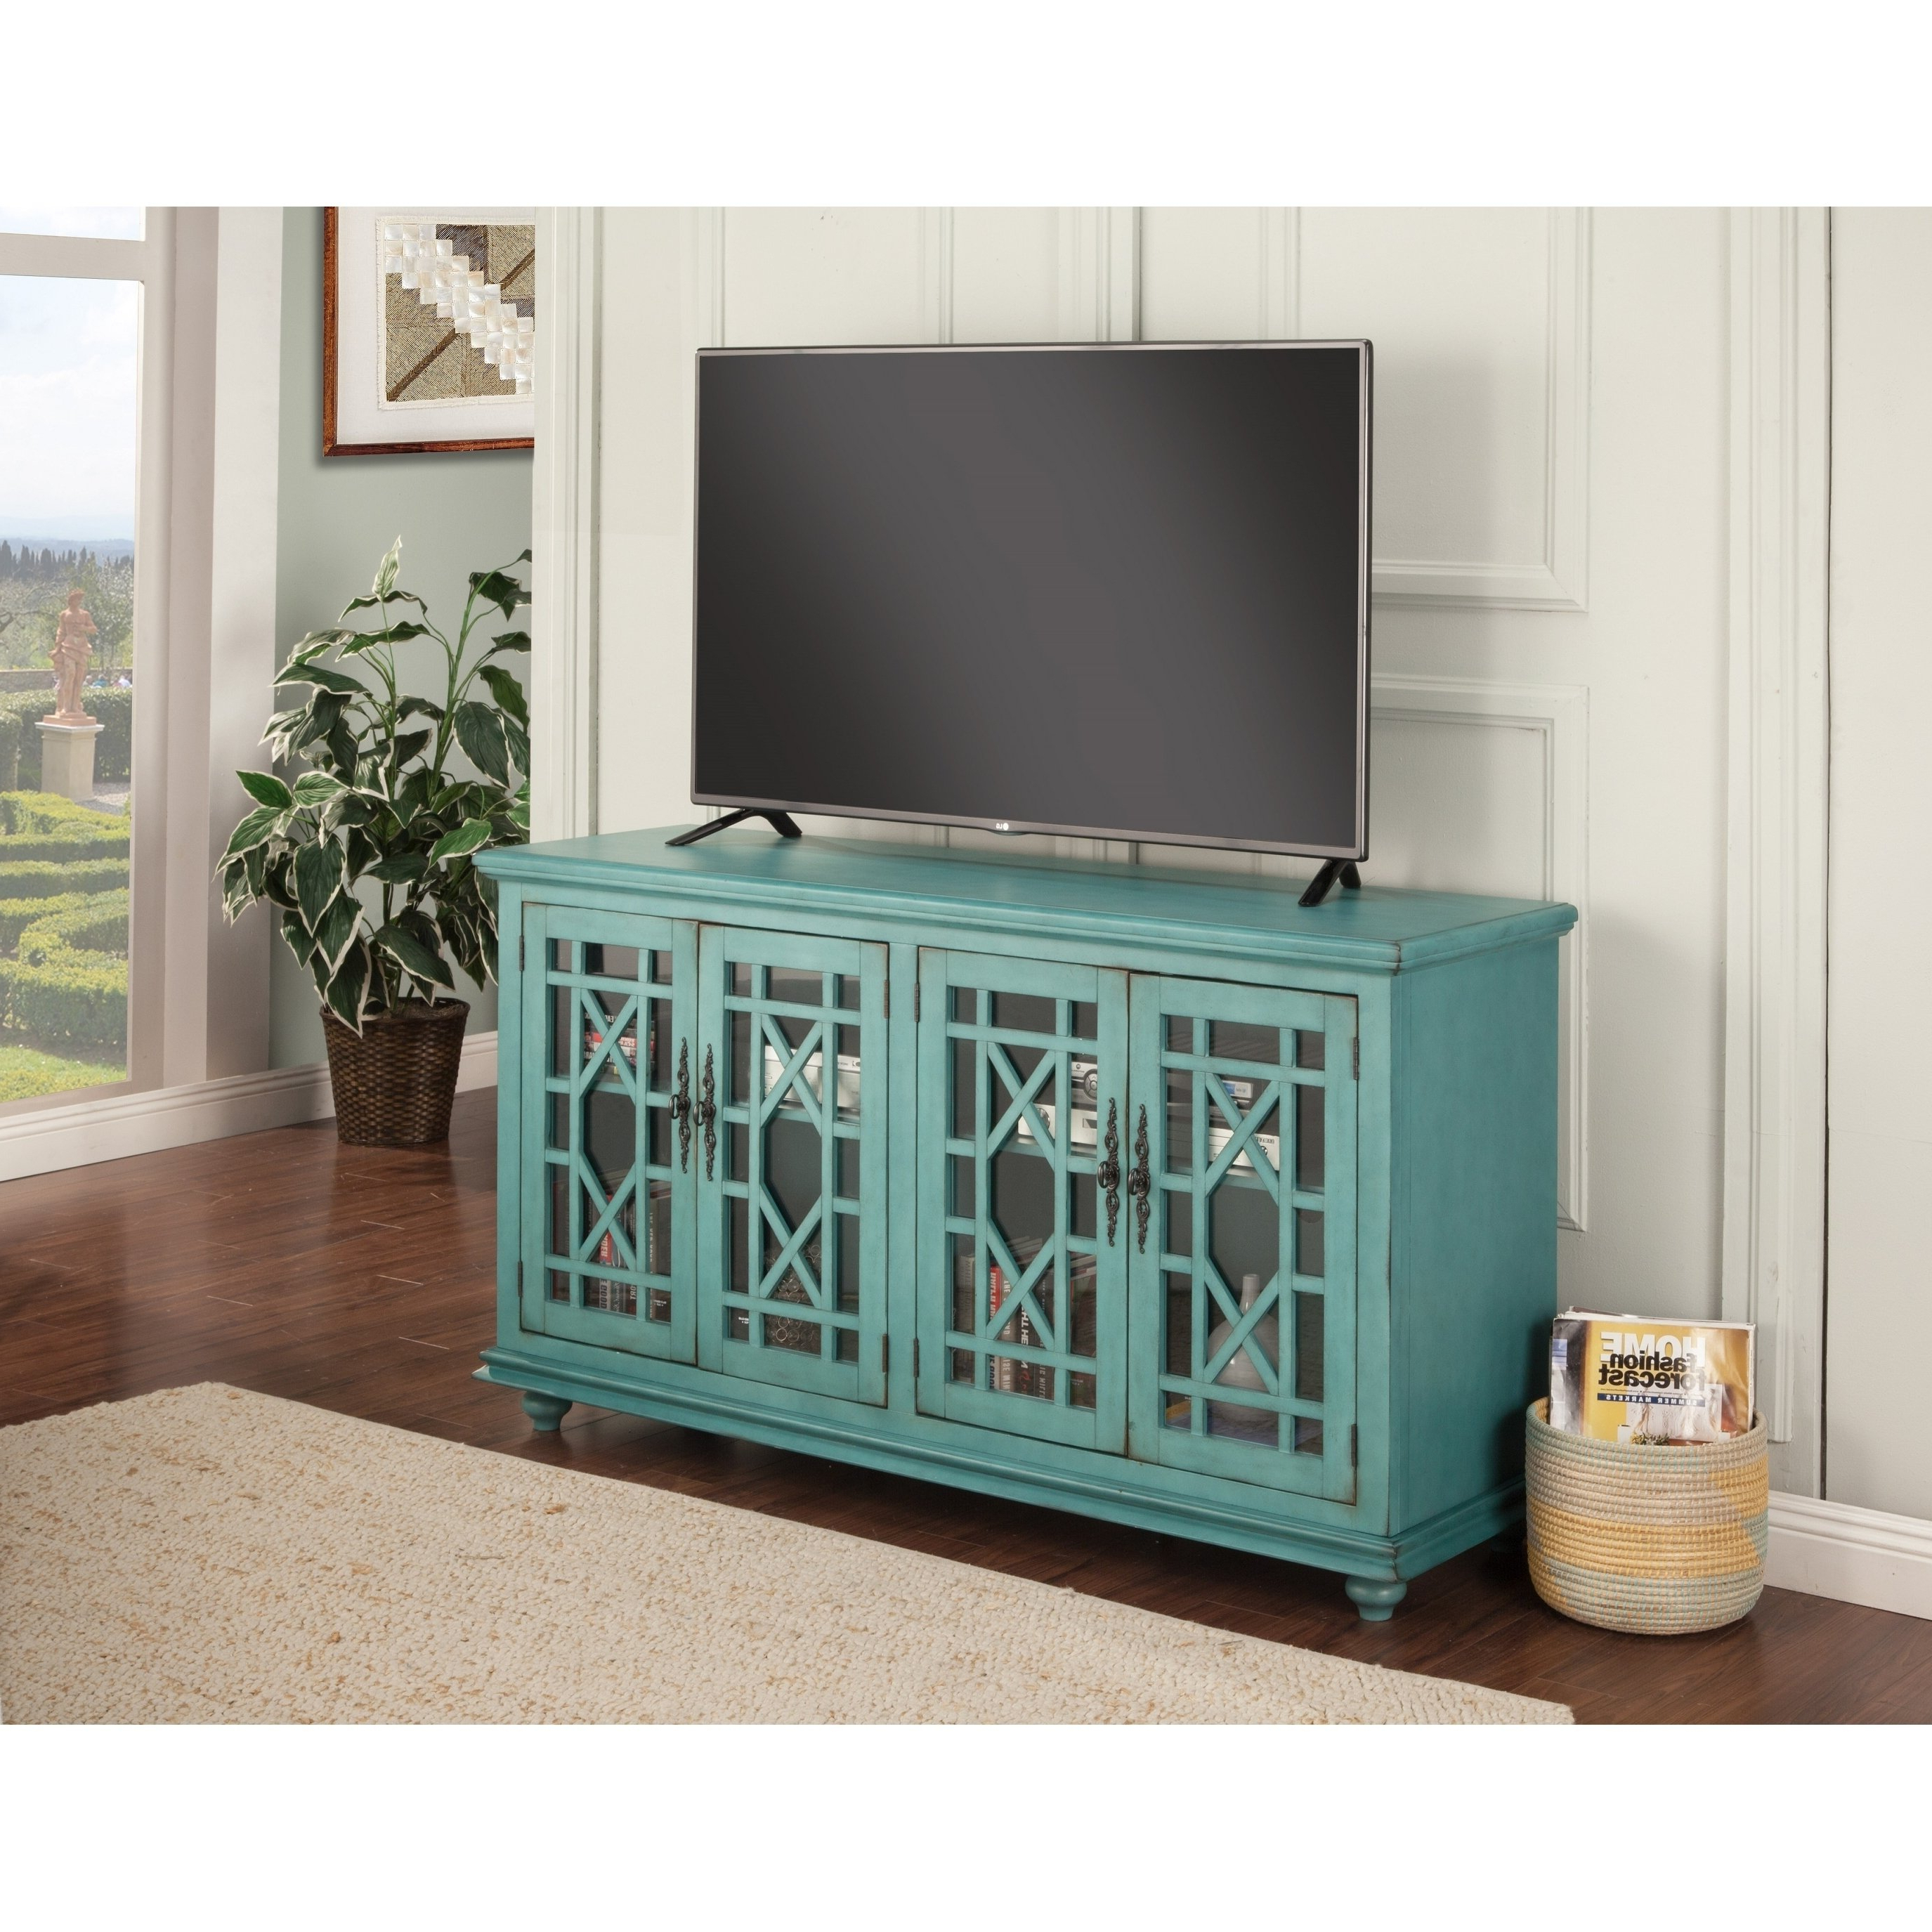 Kai 63 Inch Tv Stands With Regard To Famous Shop The Curated Nomad Mentezuma 63 Inch Tv Stand – Free Shipping On (Gallery 5 of 20)